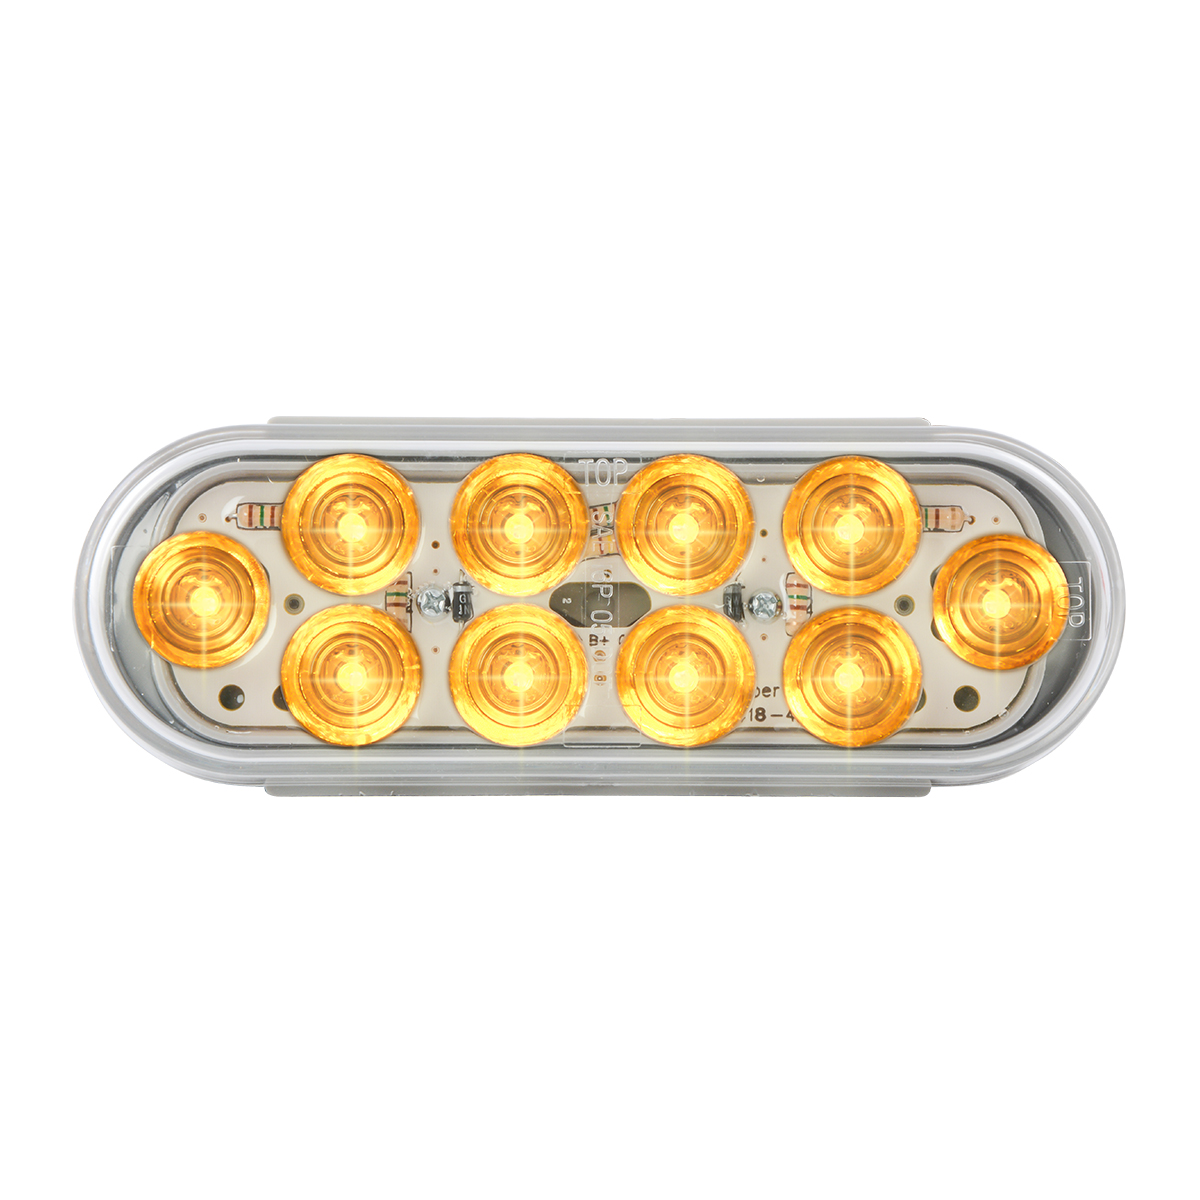 77441 Oval Mega 10 LED Light in Amber/Clear